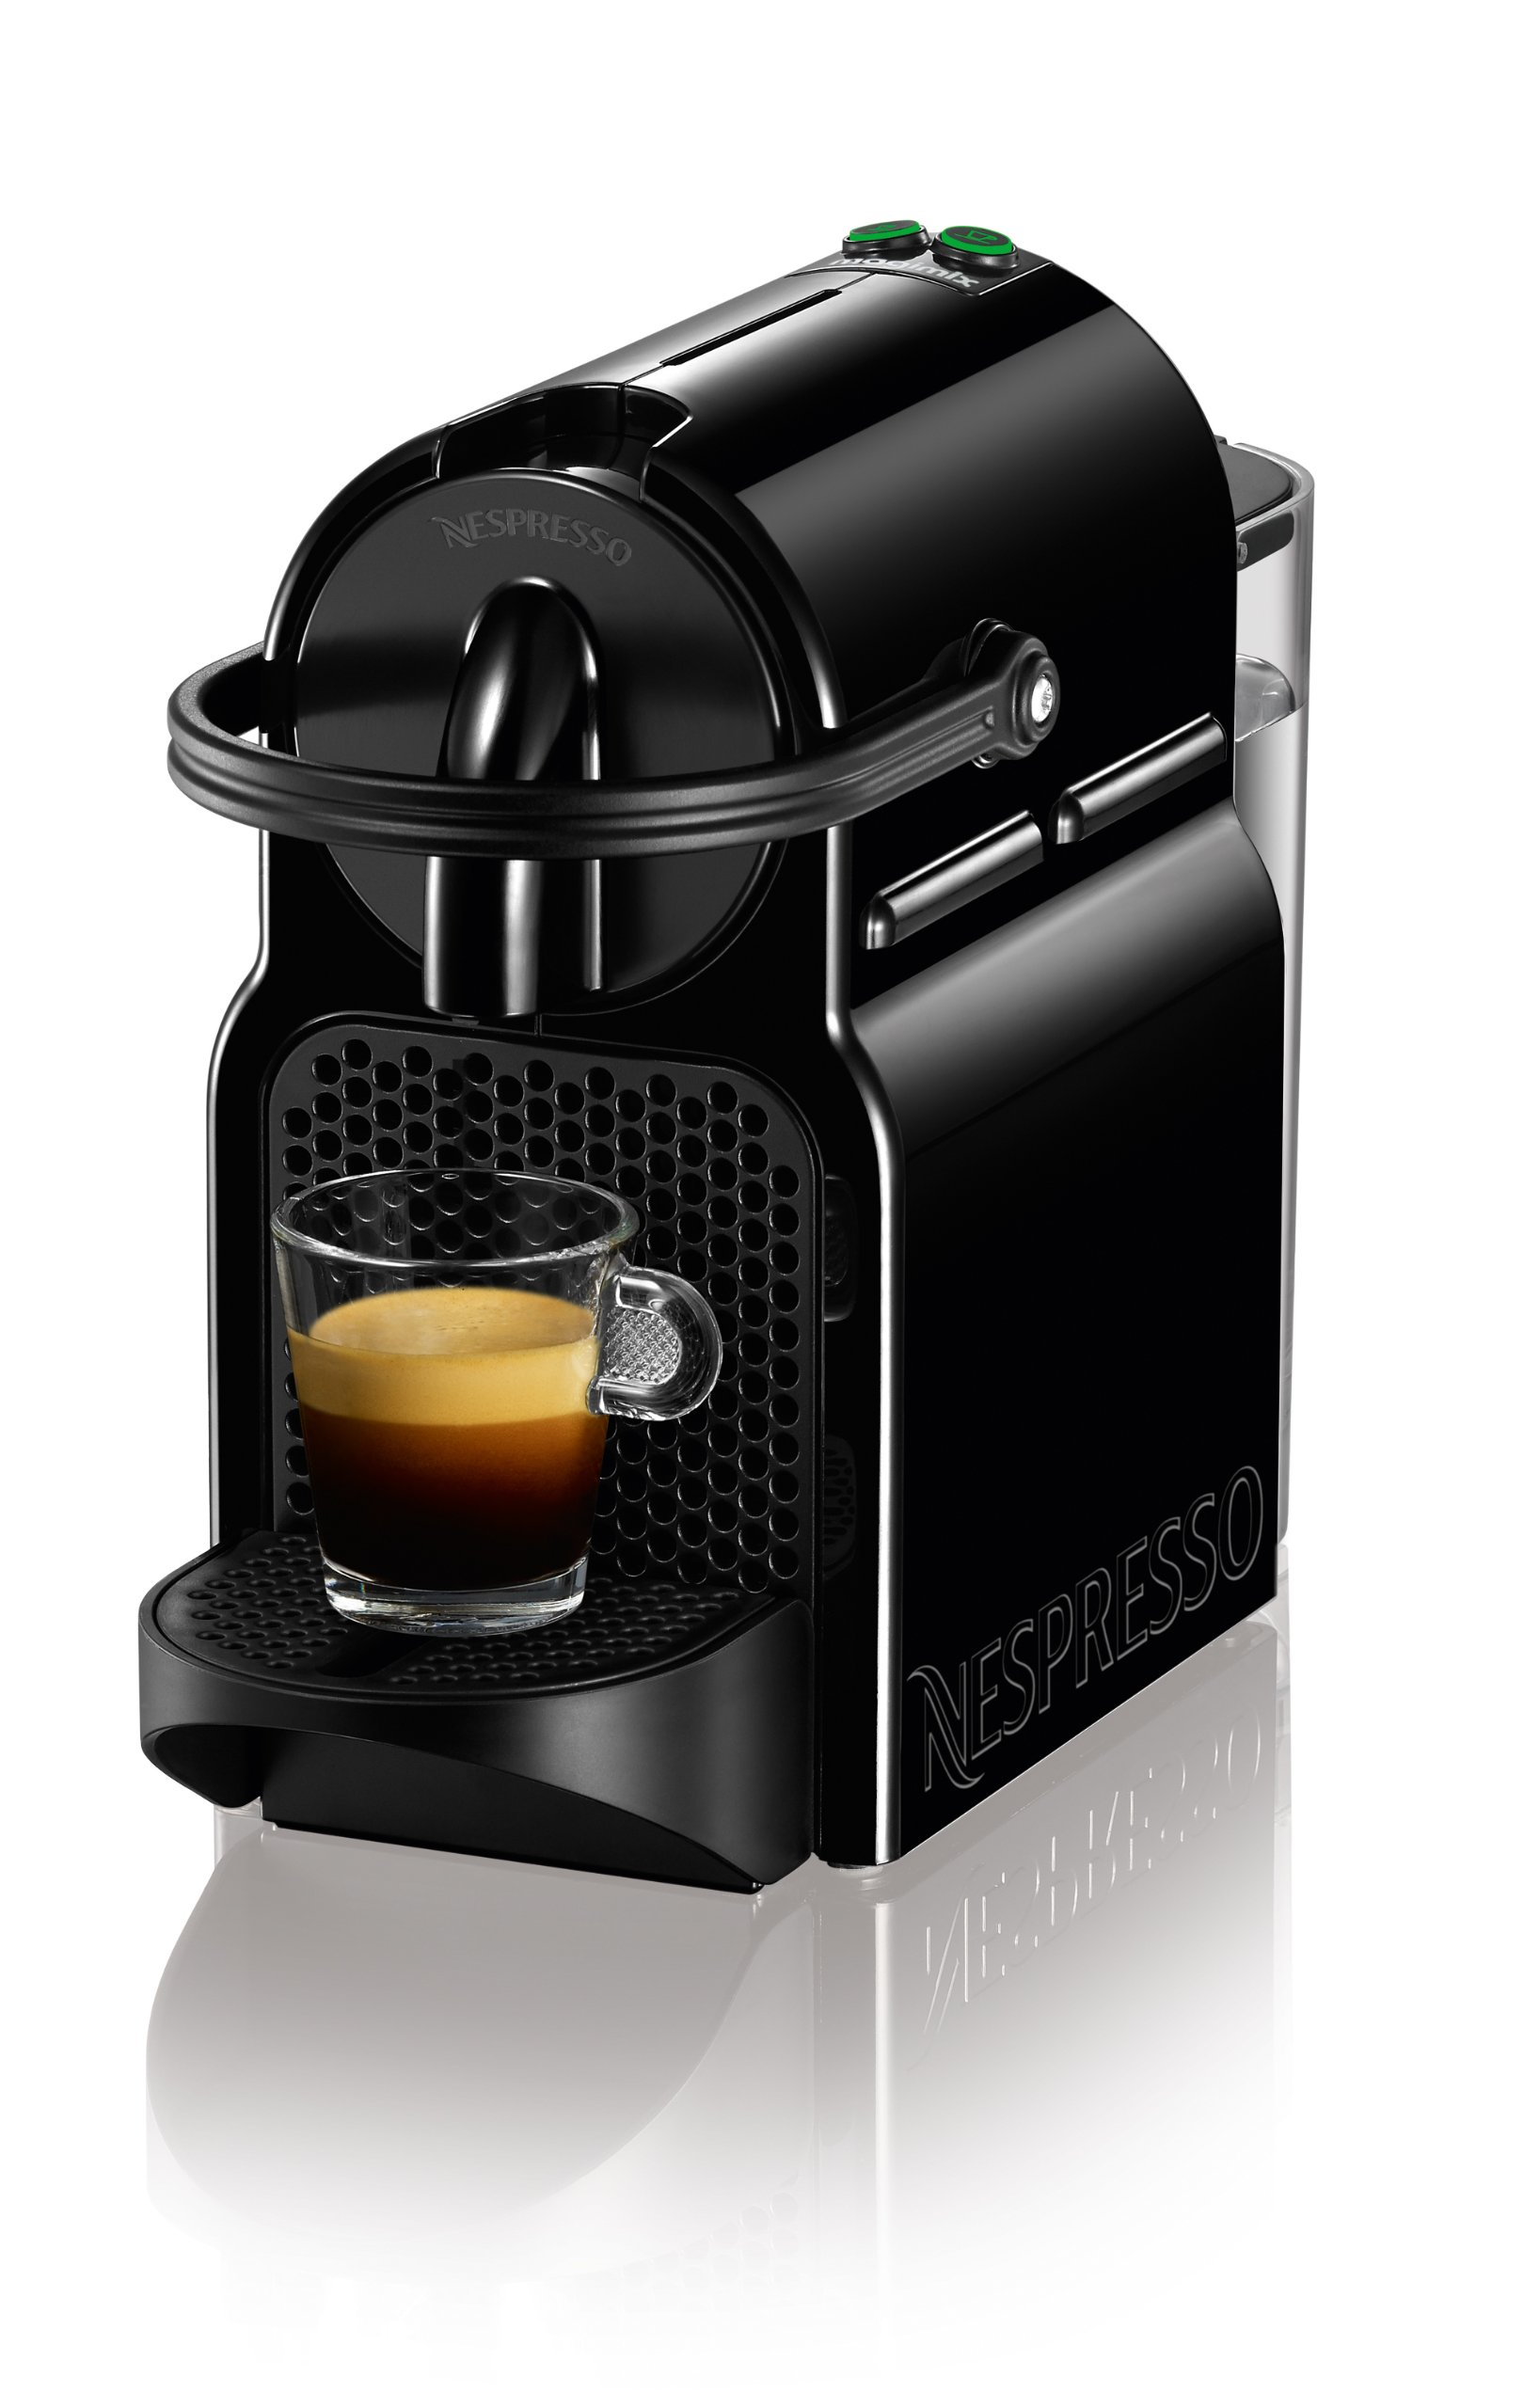 magimix nespresso inissia coffee machine black. Black Bedroom Furniture Sets. Home Design Ideas